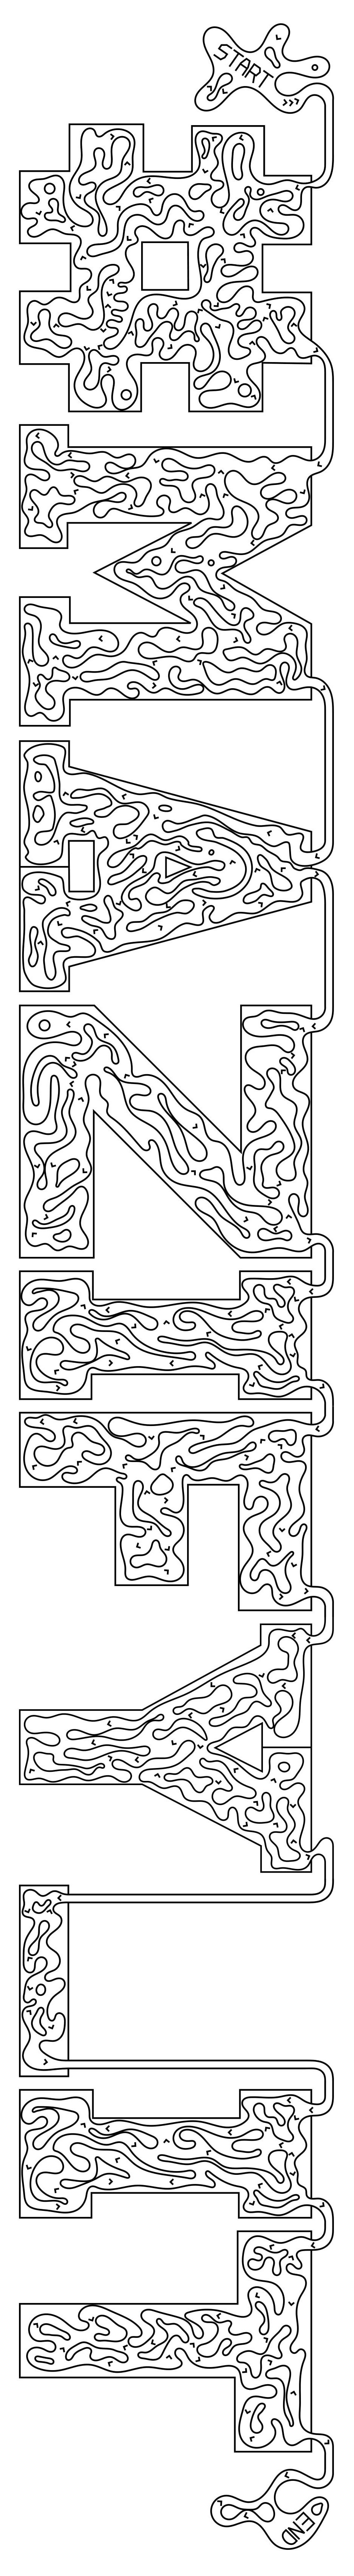 You Can Use #hashtag In Your #maze Now! #mazify_It Maze!!! Create - Create Your Own Maze Free Printable